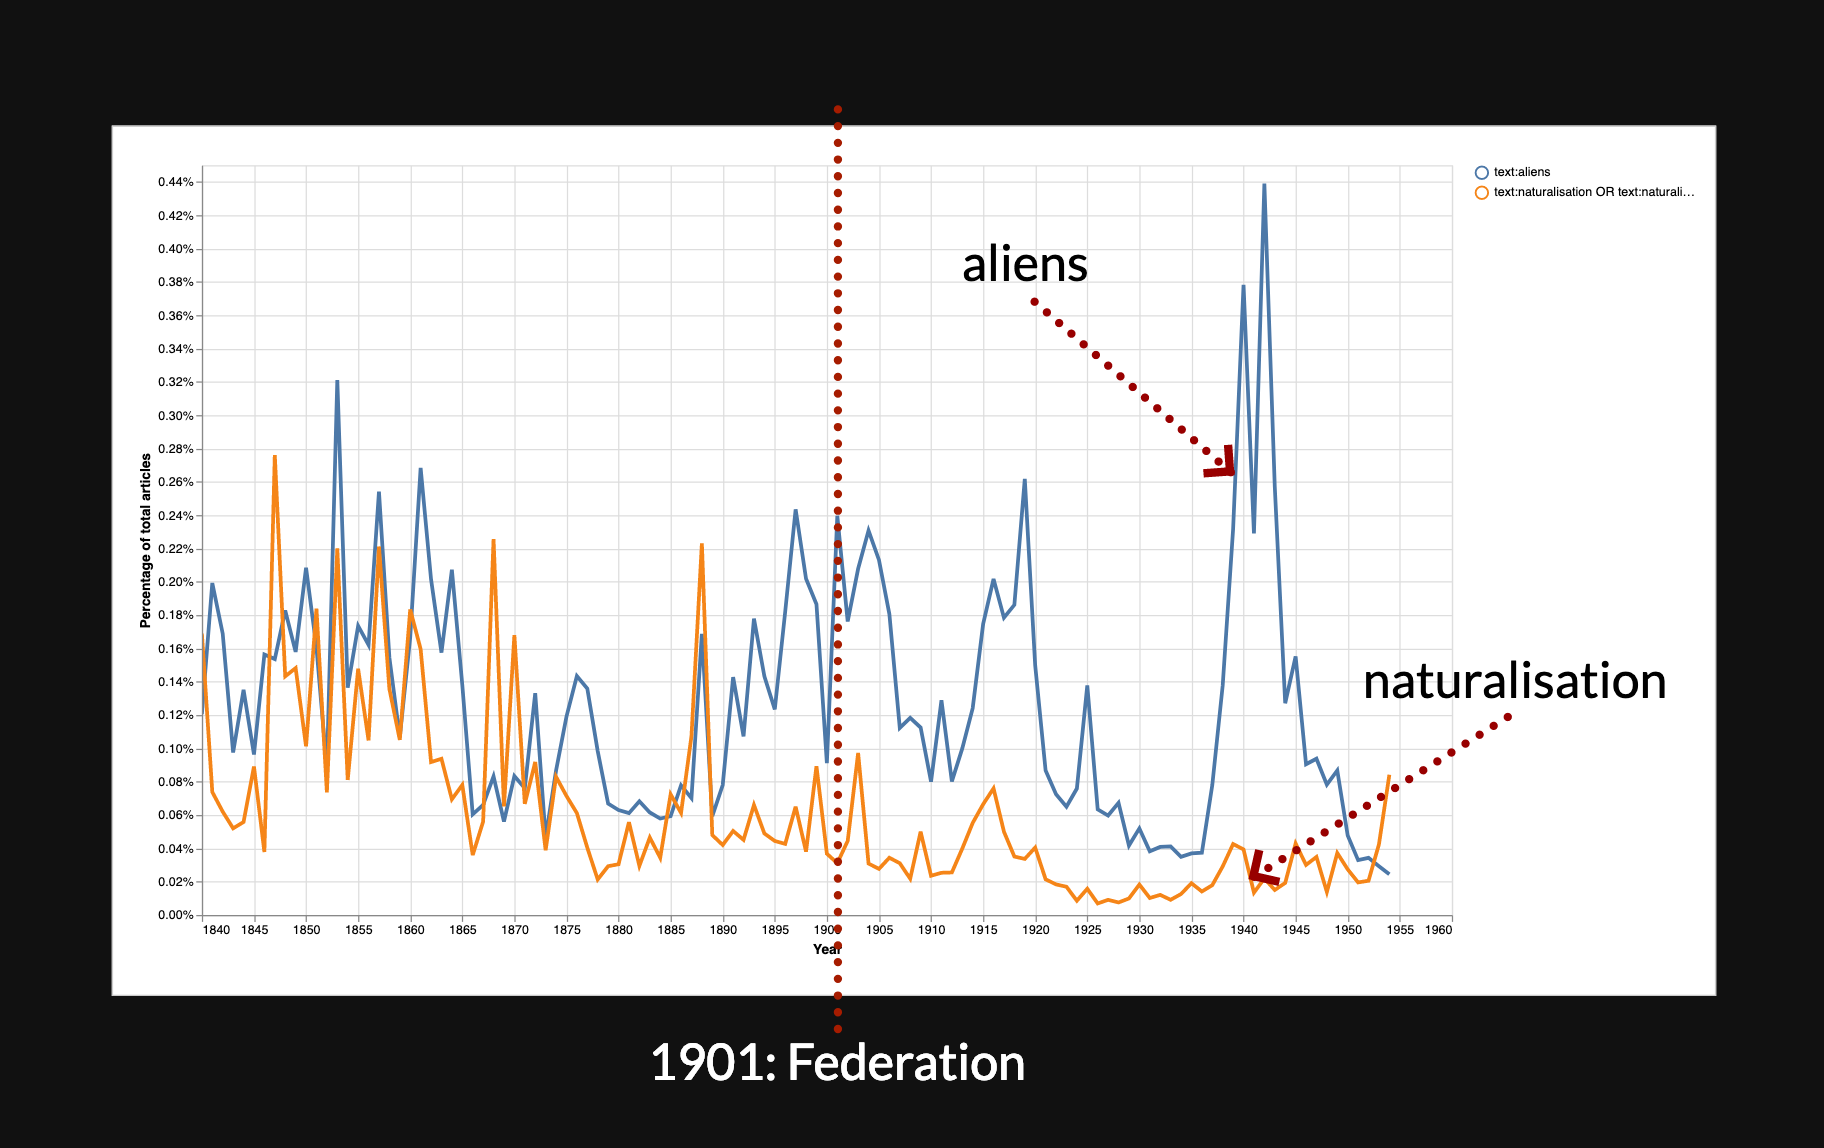 Chart comparing frequency of aliens and naturalisation in Trove newspapers